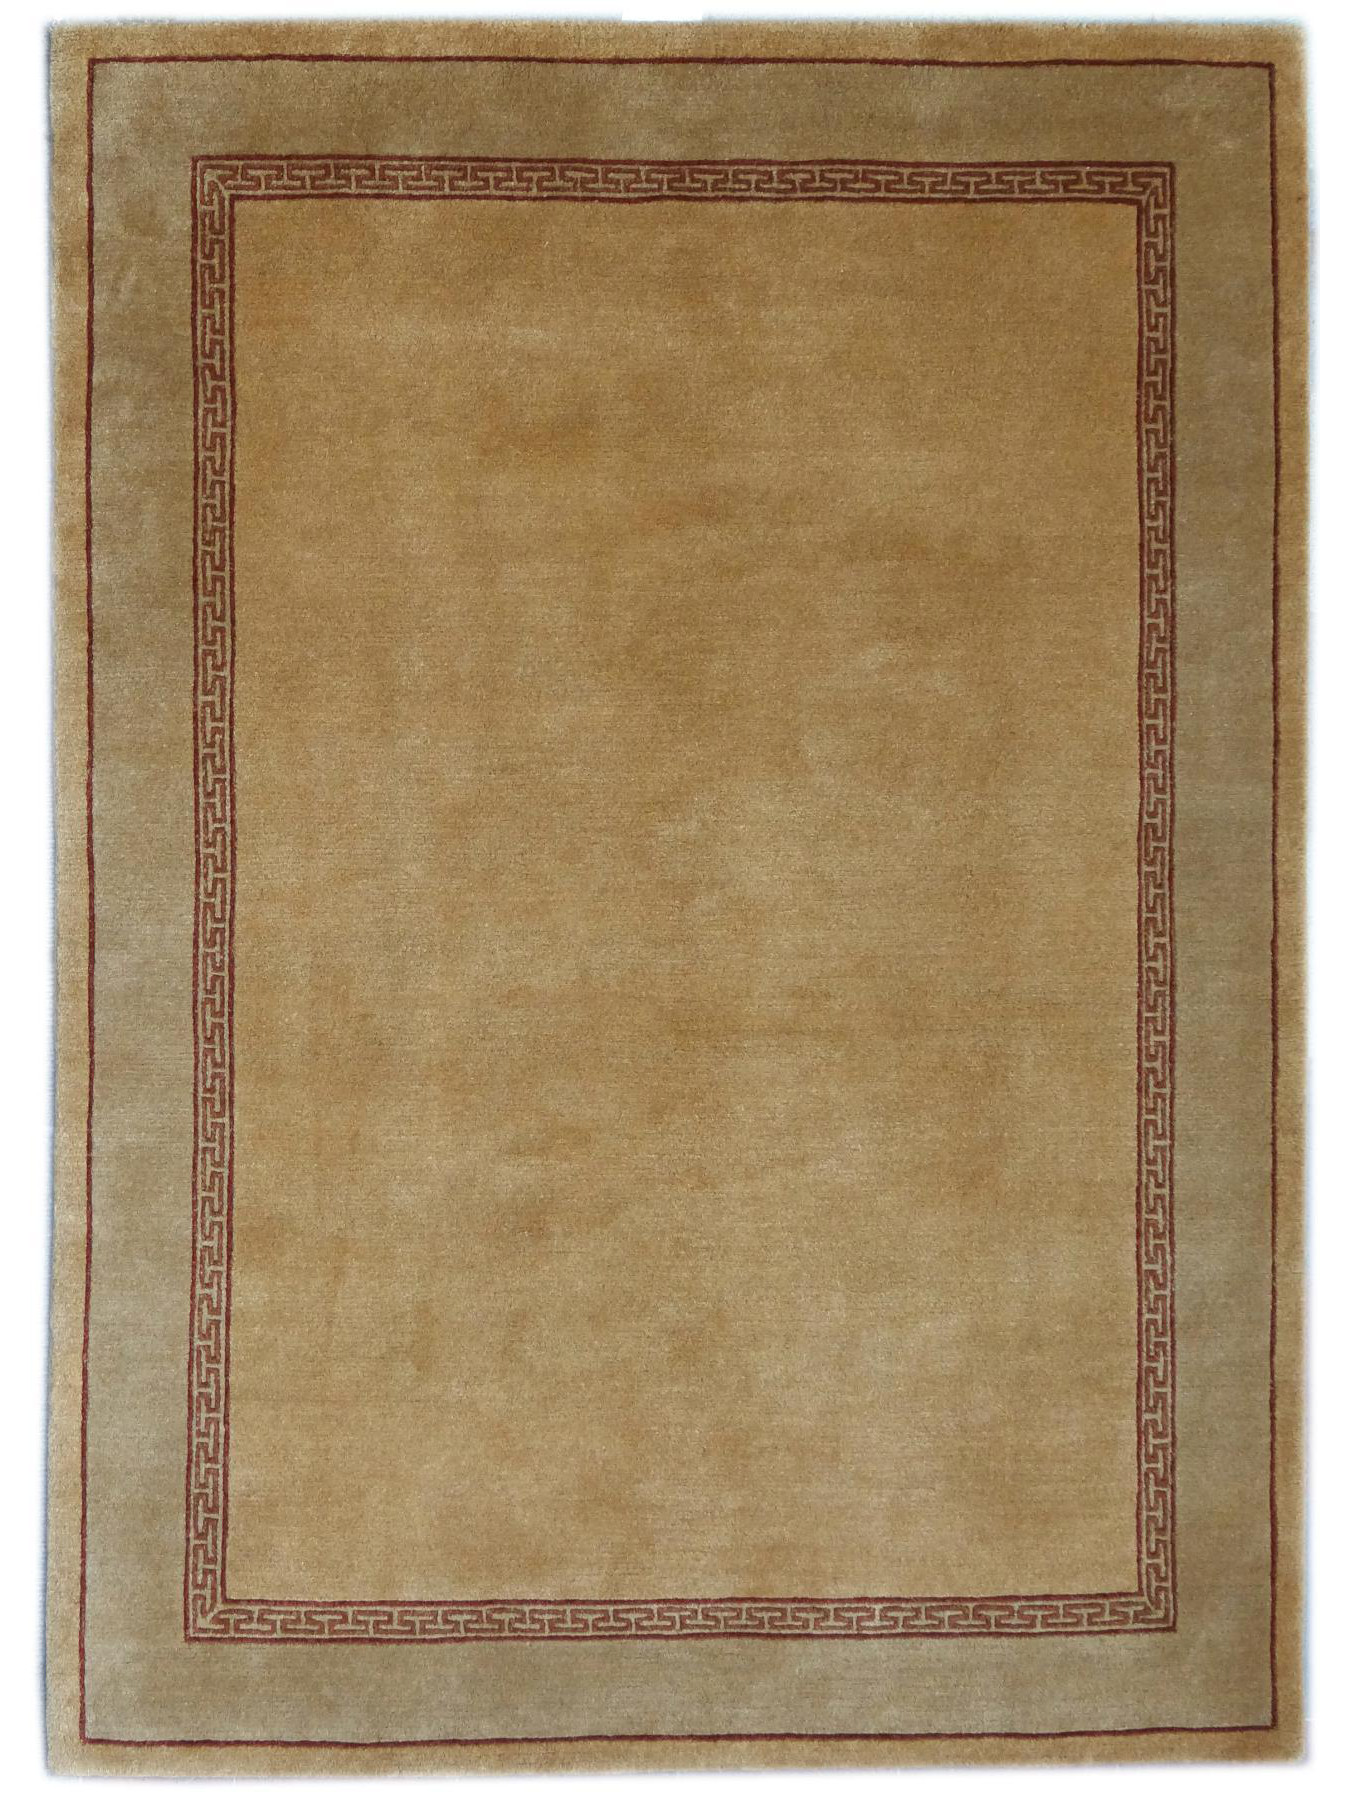 Carpets with borders - CROWN - 6104